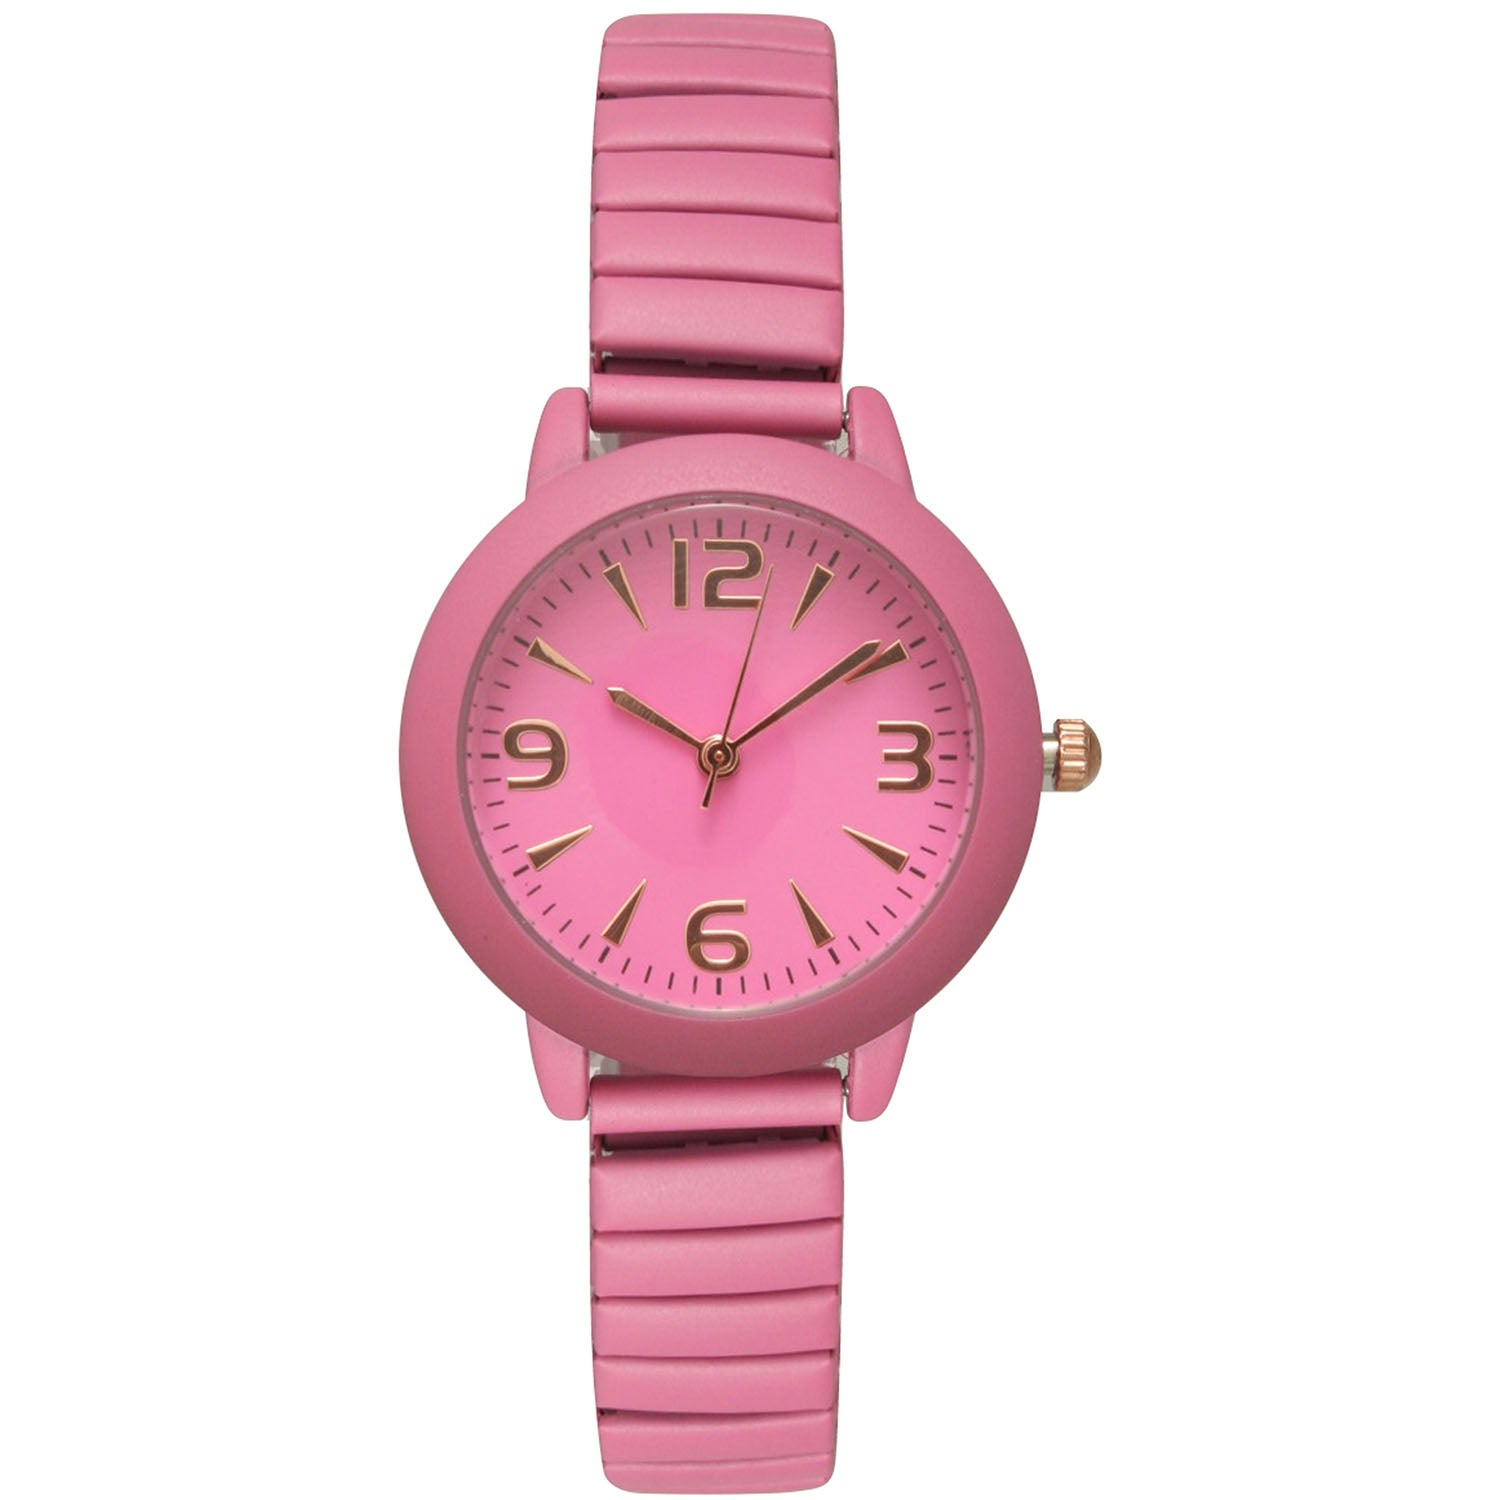 Olivia Pratt Women's Basic Everyday Watch